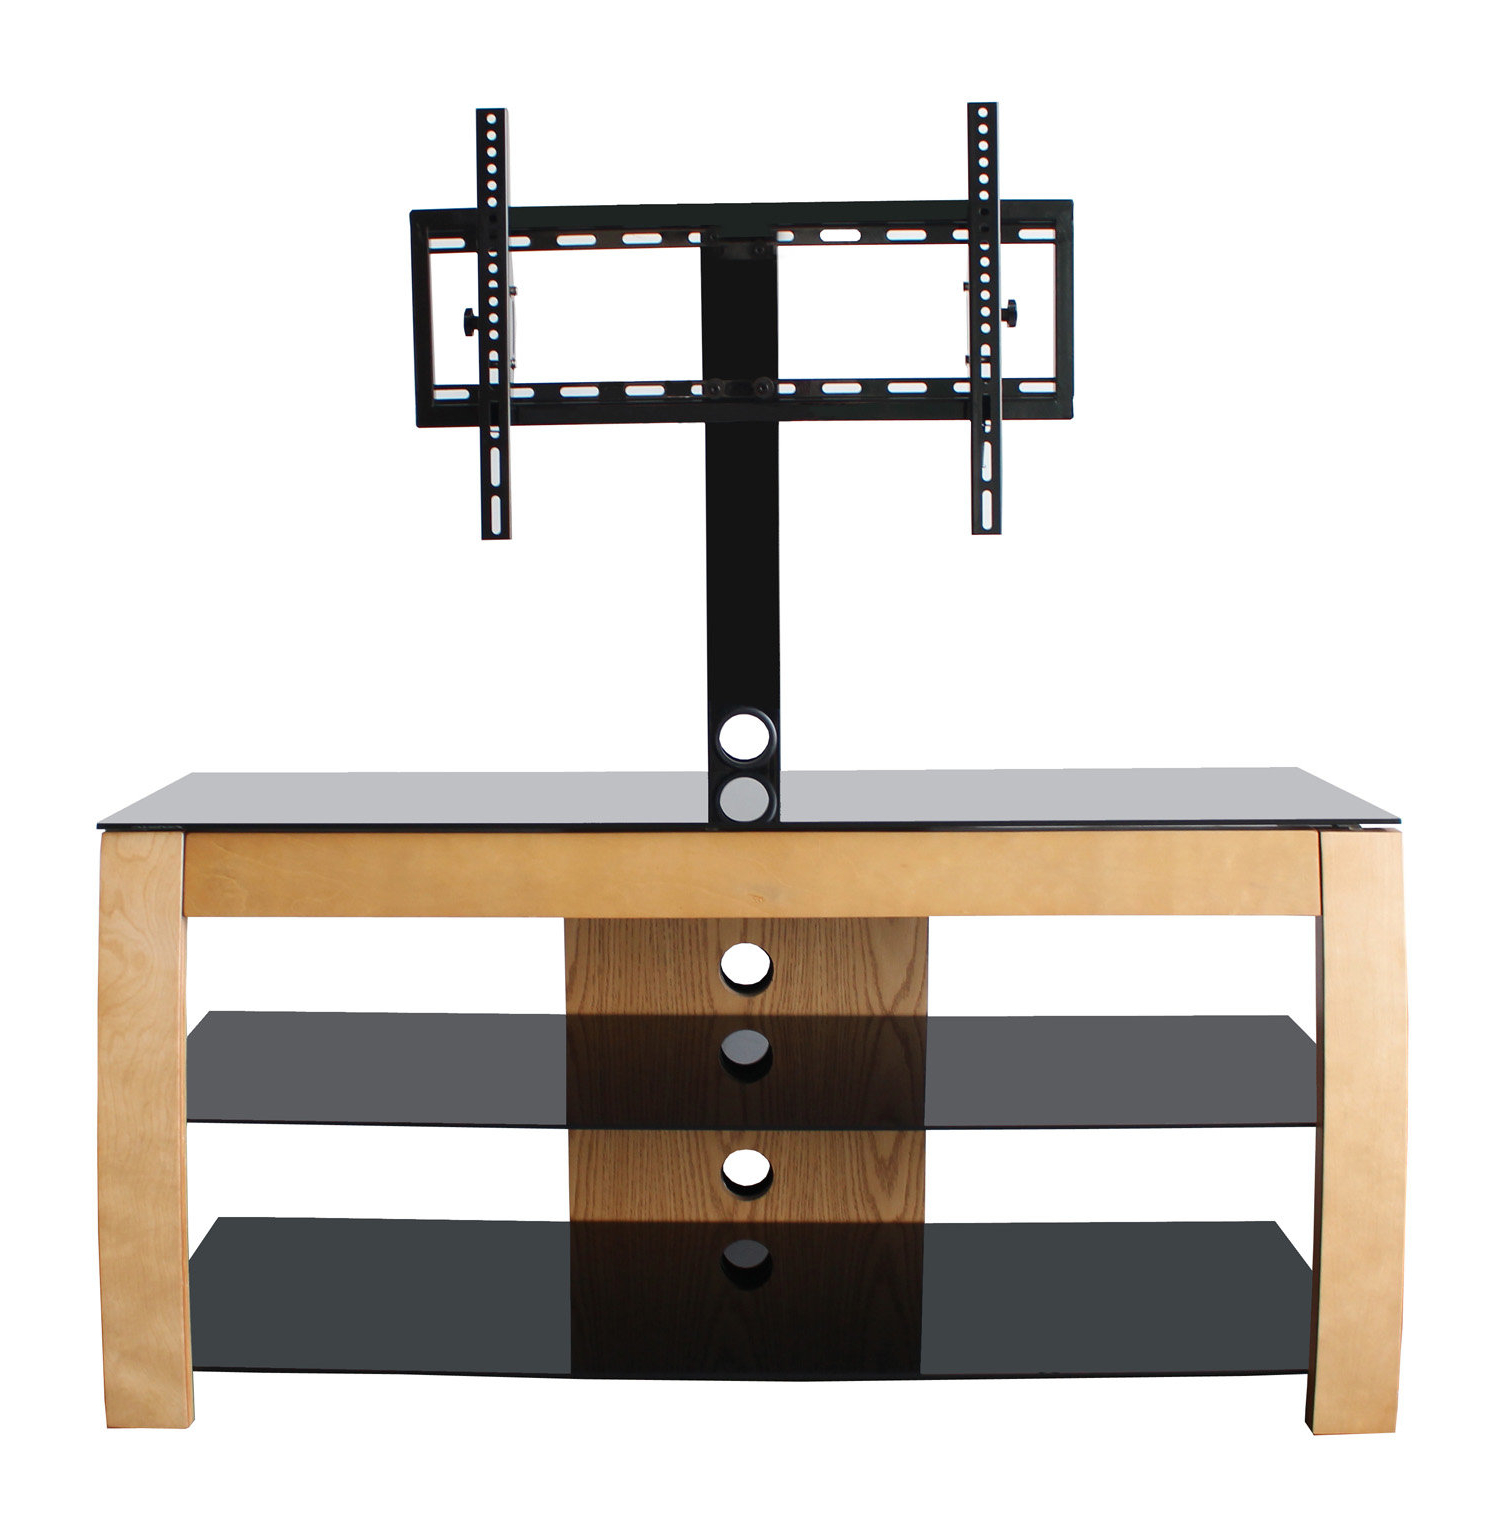 60 69 Inch Tv Stands You'll Love | Wayfair (View 11 of 20)